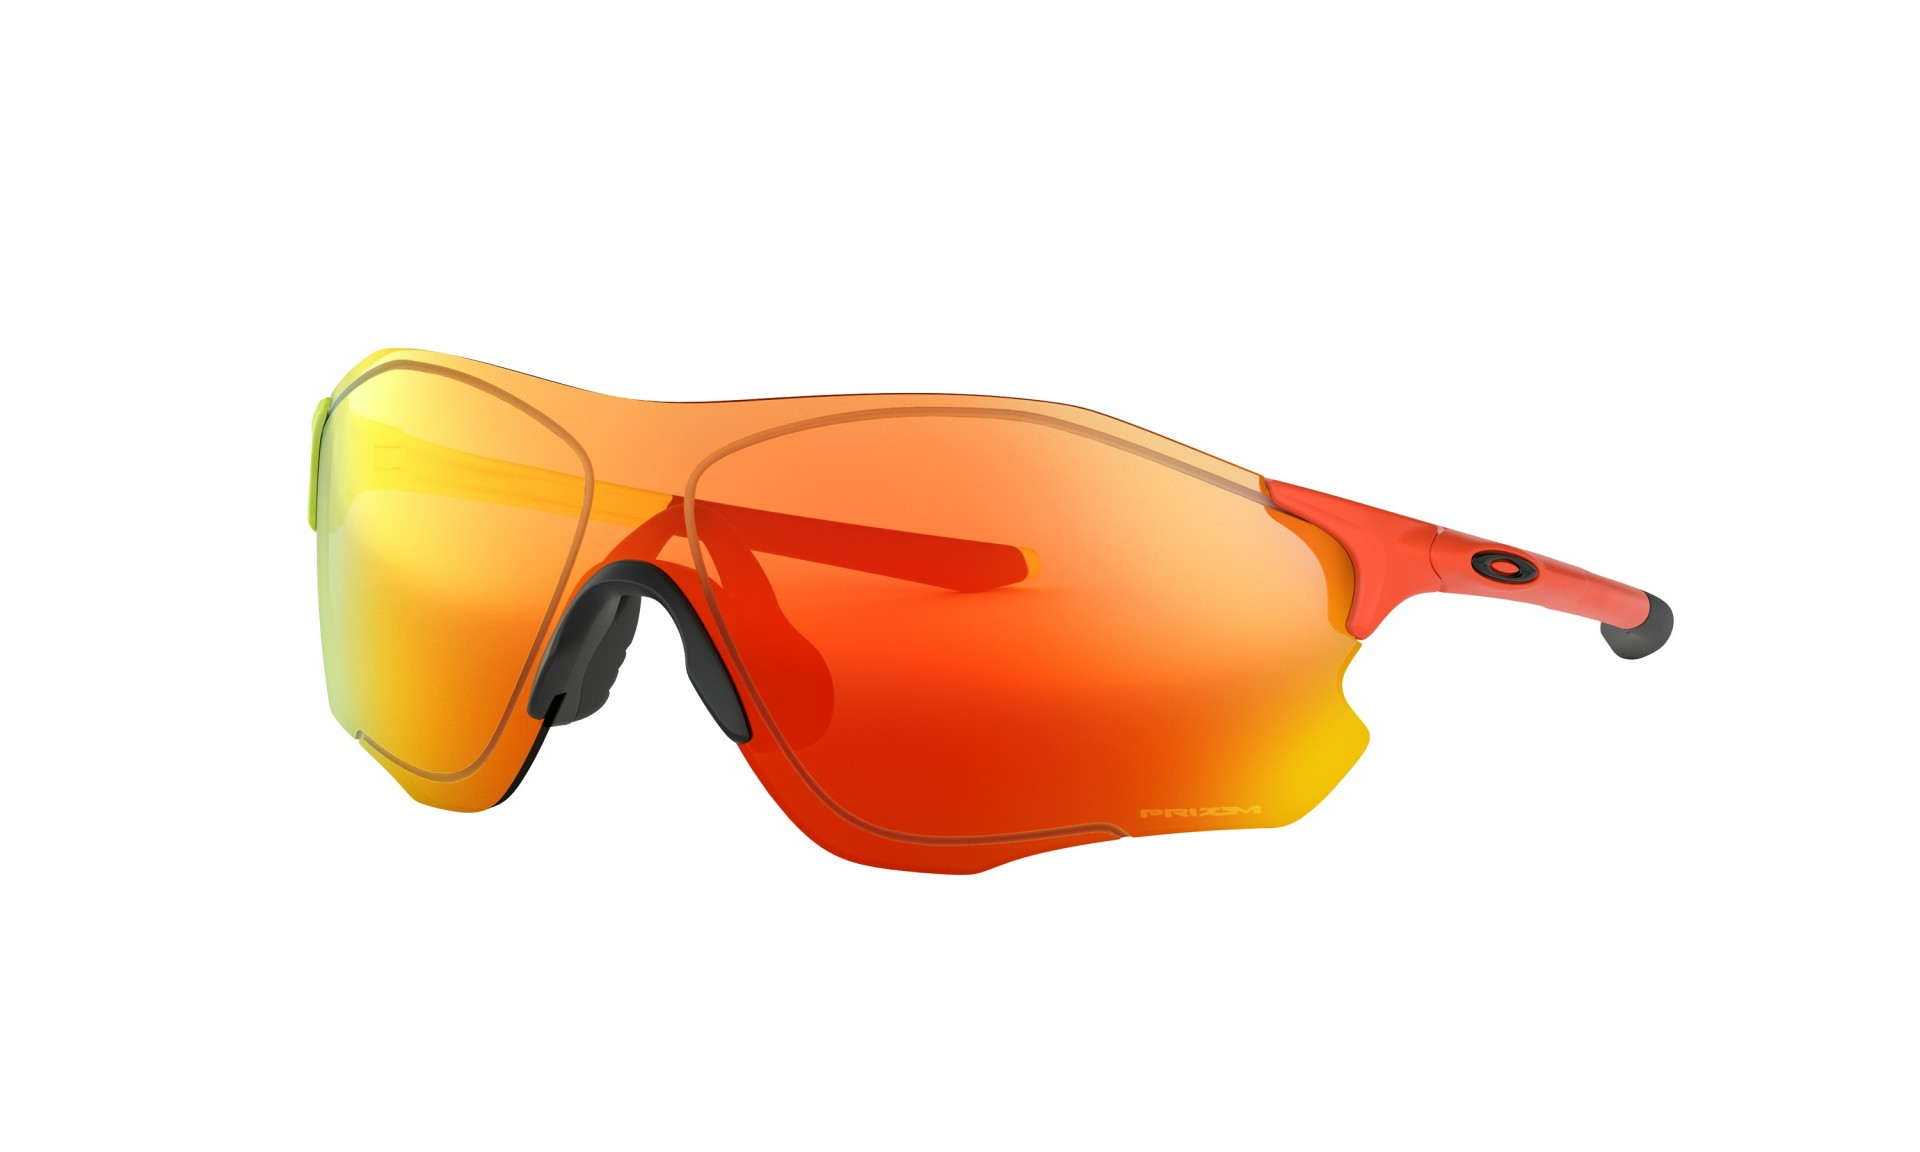 OCULOS OAKLEY EVZERO™ PATH® HARMONY FADE COLLECTION   Epic Bike Store 75e65bb453